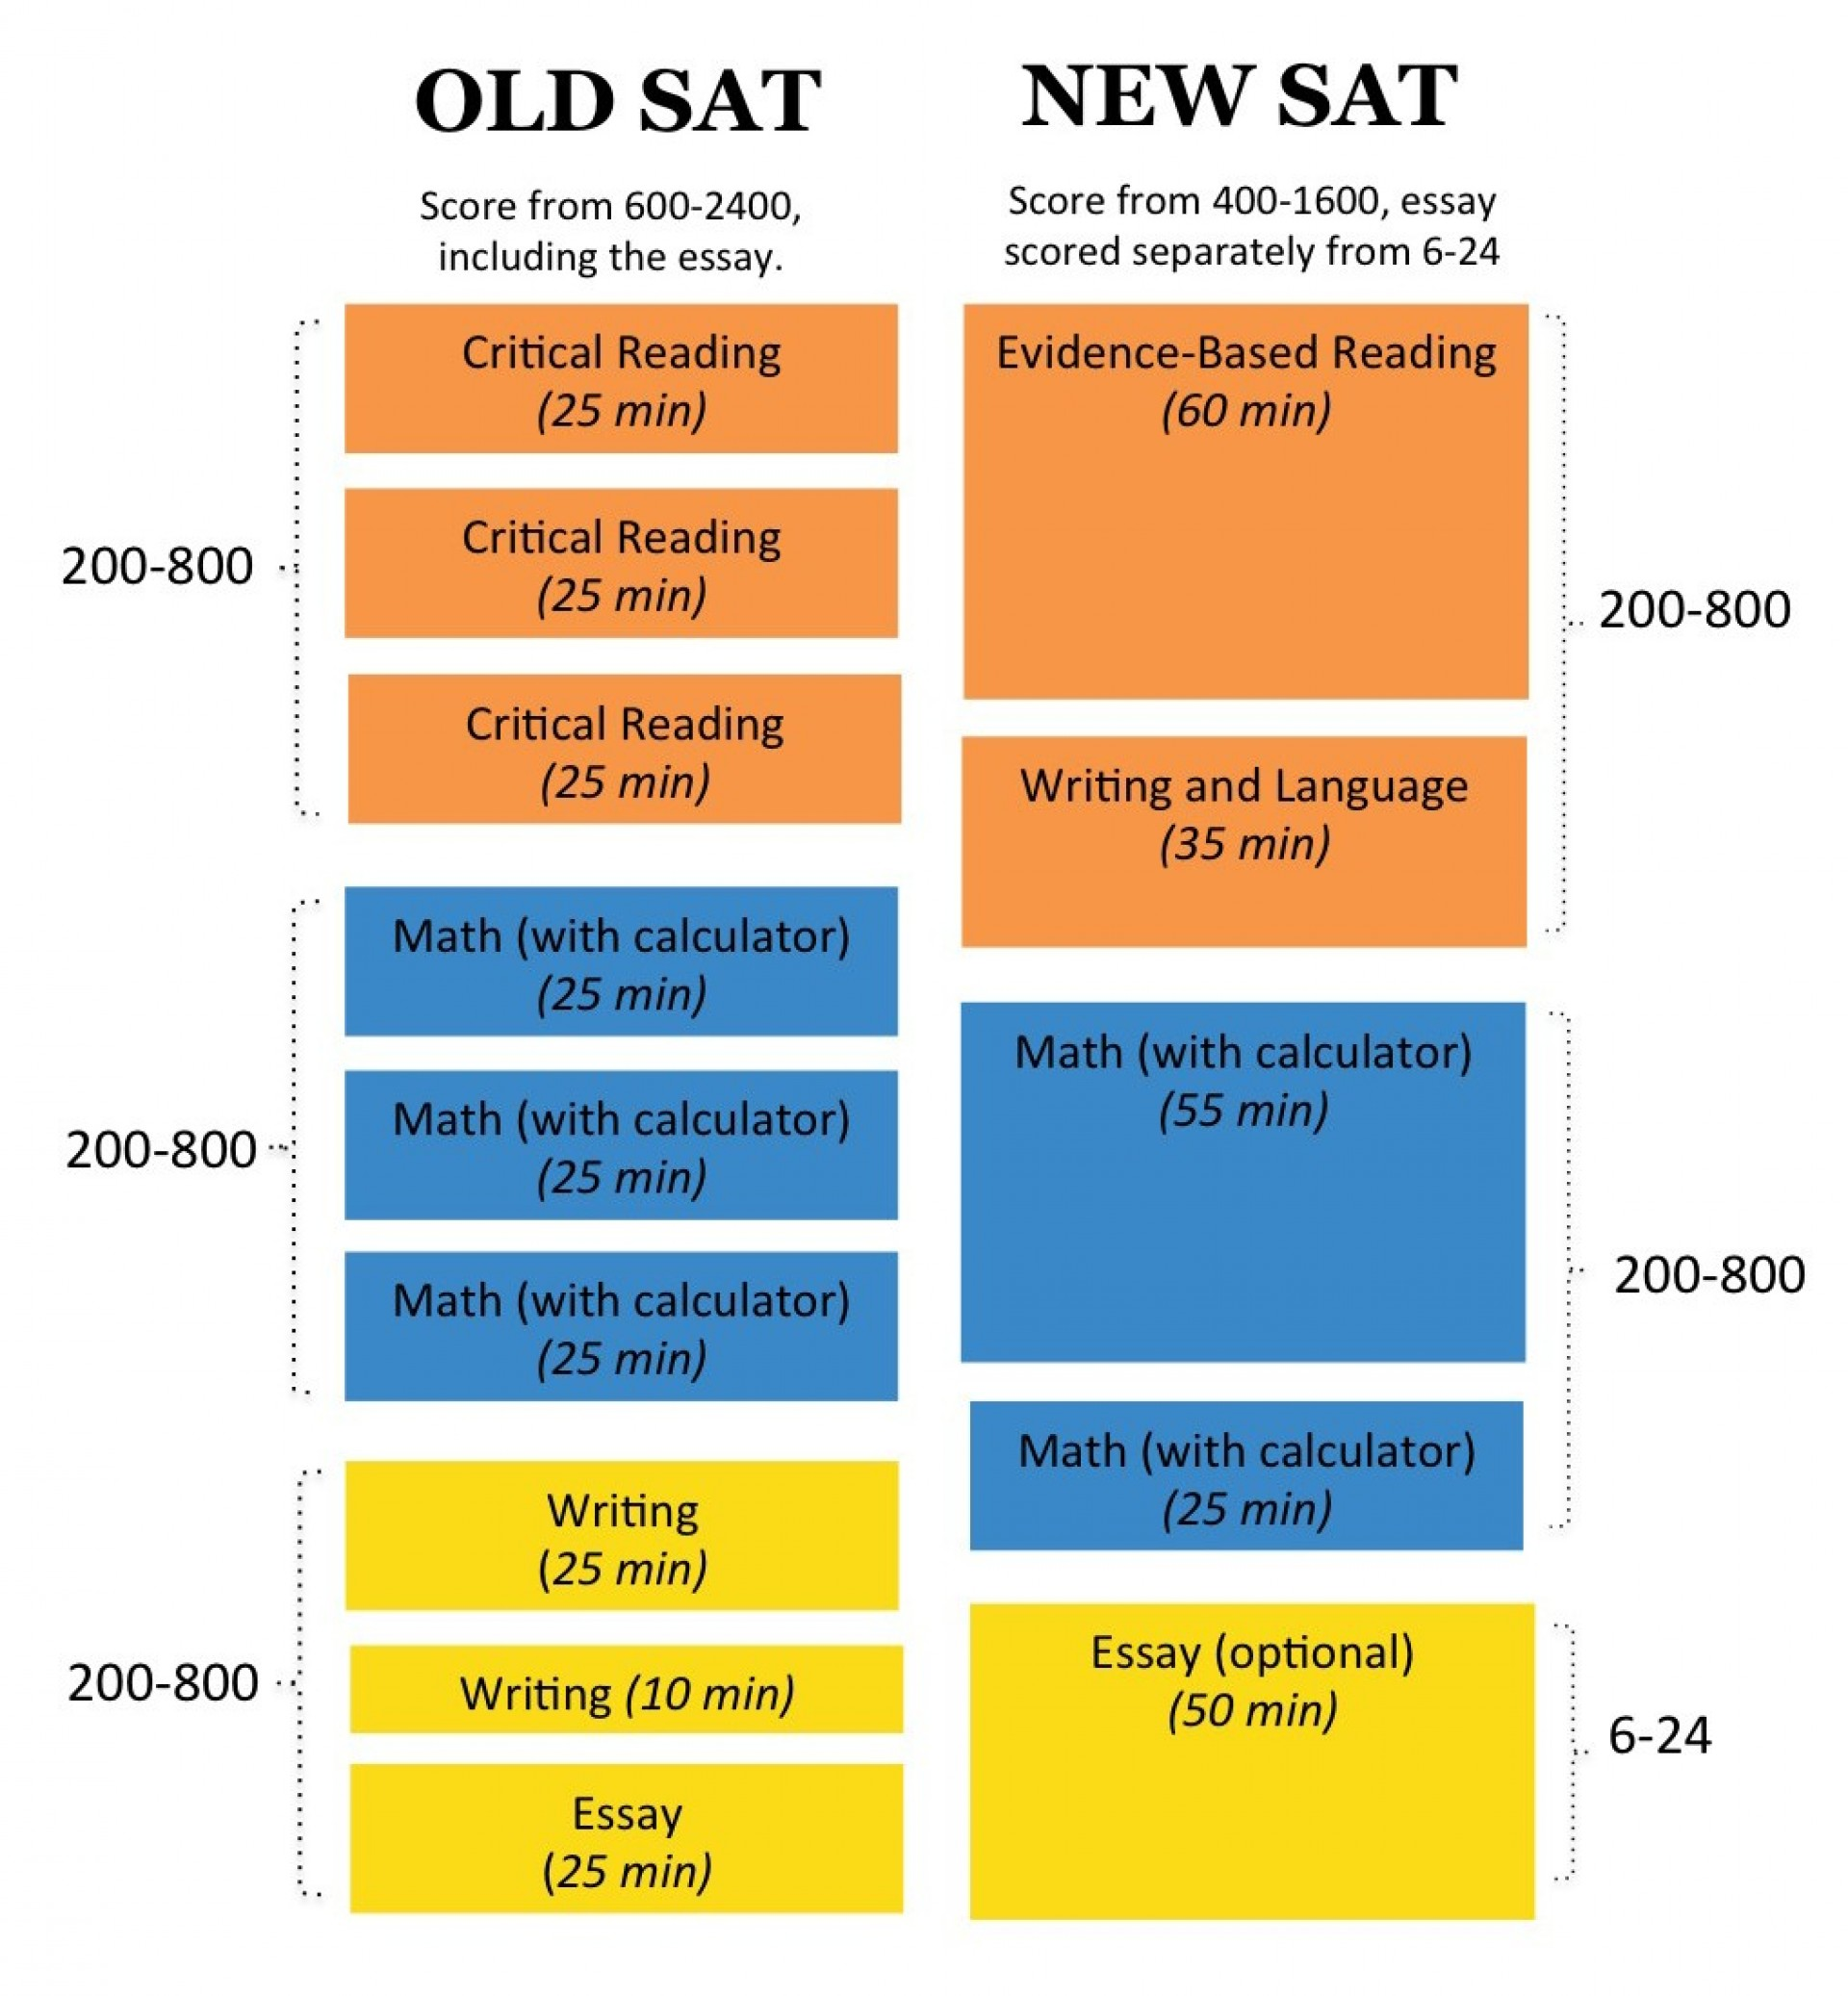 002 New Sat Essay Score Example Range What Is The Average How To Practice Writing Slide1 Prepare Imposing Perfect 1920